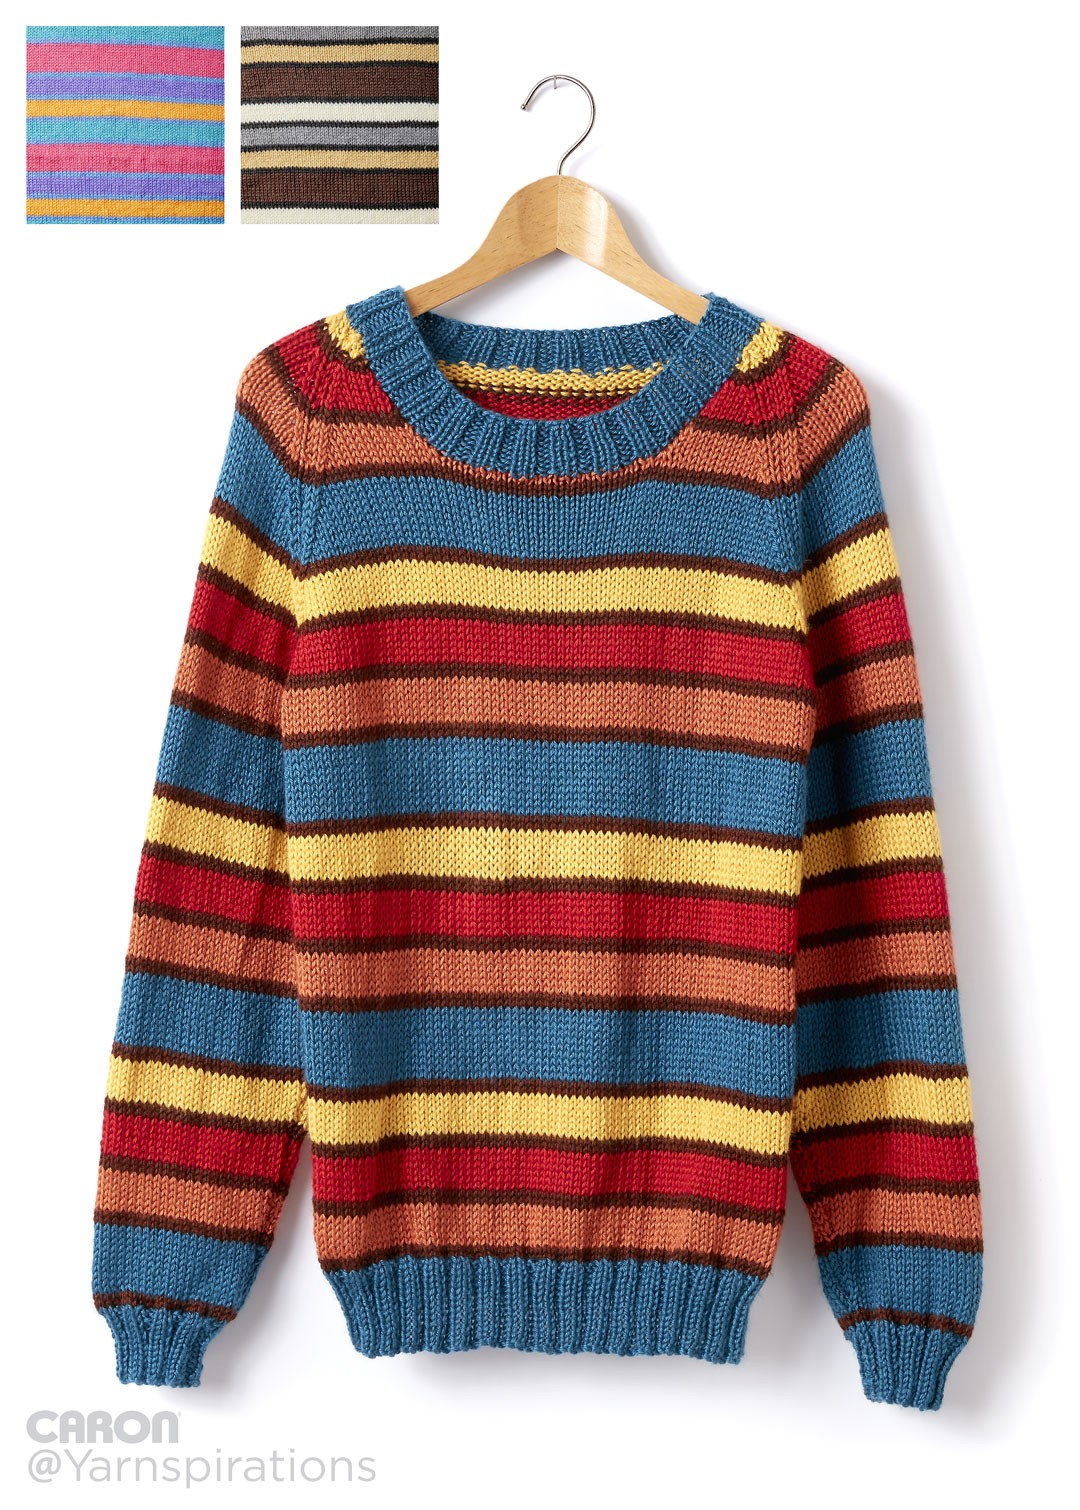 Pullover Knitting Pattern : Caron adult knit crew neck striped pullover pattern